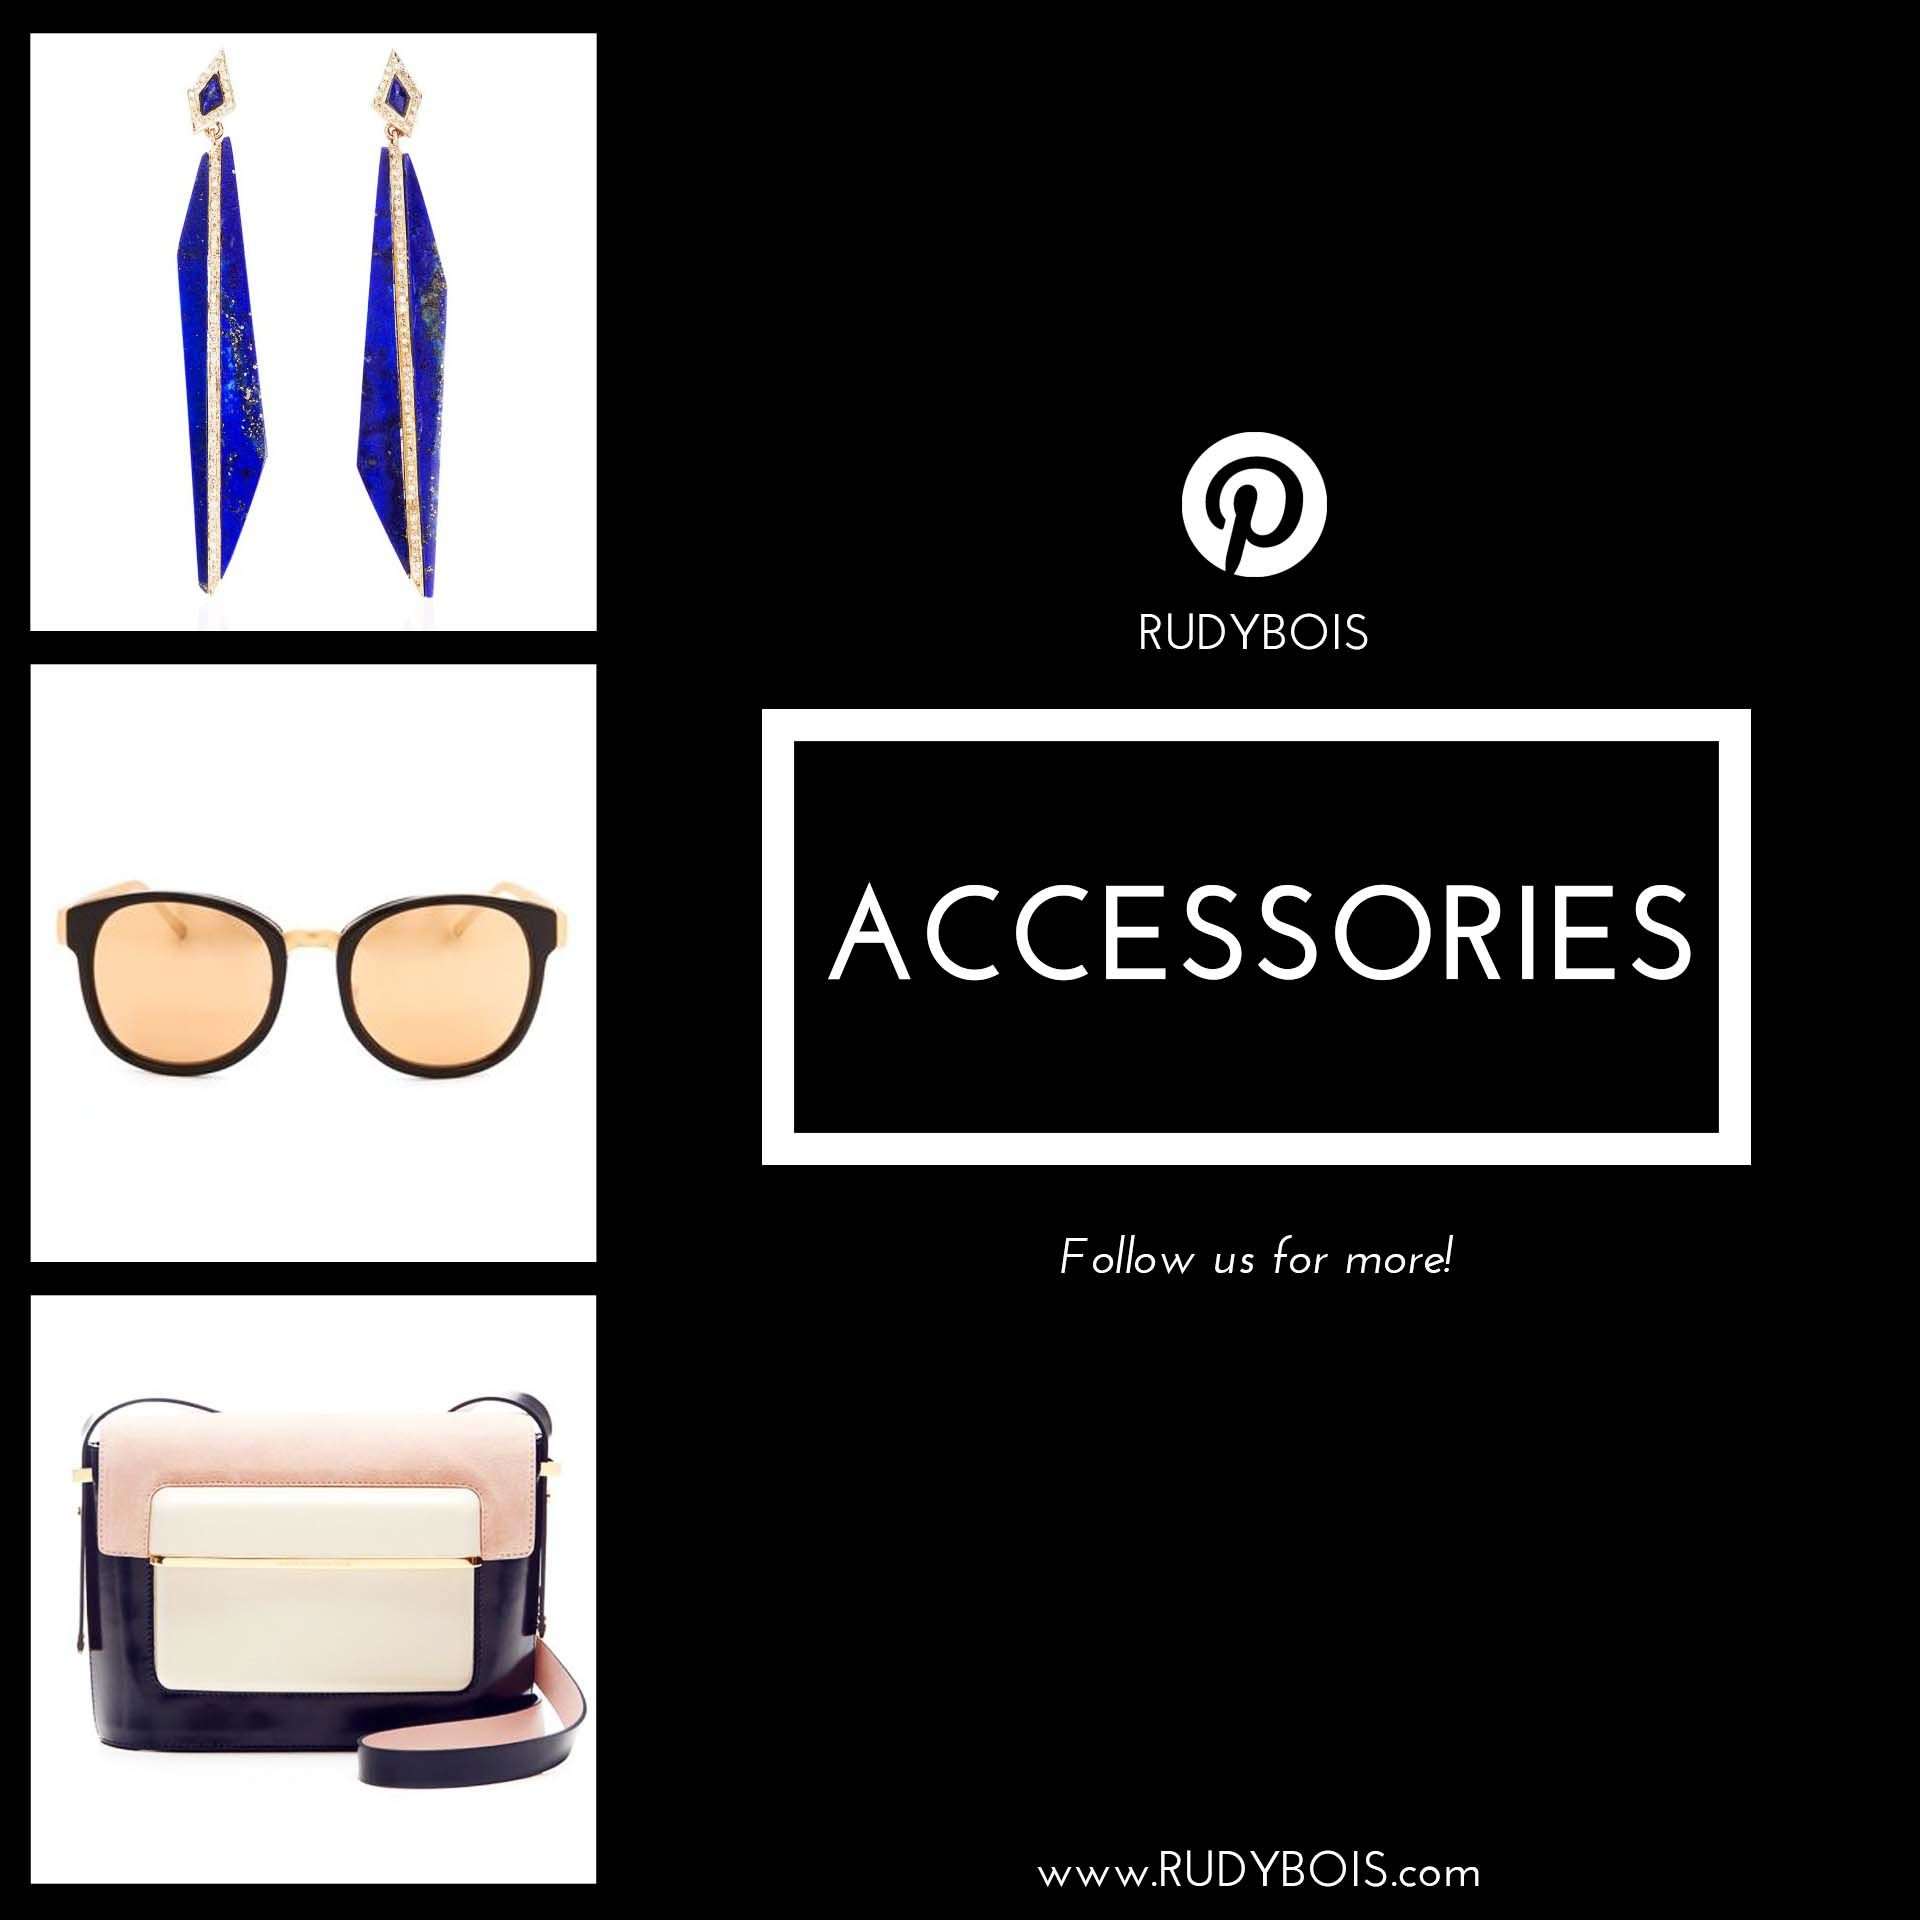 On our Pinterest's board «Accessories», see our team's selection of accessories to style your RUDYBOIS's garments. Keep Vivienne Westwood's quote in mind: «Buy less choose well»! Invest in great bags, rings, necklaces, bracelets and glasses. Follow us on Pinterest to keep your inspiration's flow. www.RUDYBOIS.com #designer #fashion #cocktail #evening #day #accessories #rudybois #glasses #earring #bag #handbag #runway #style